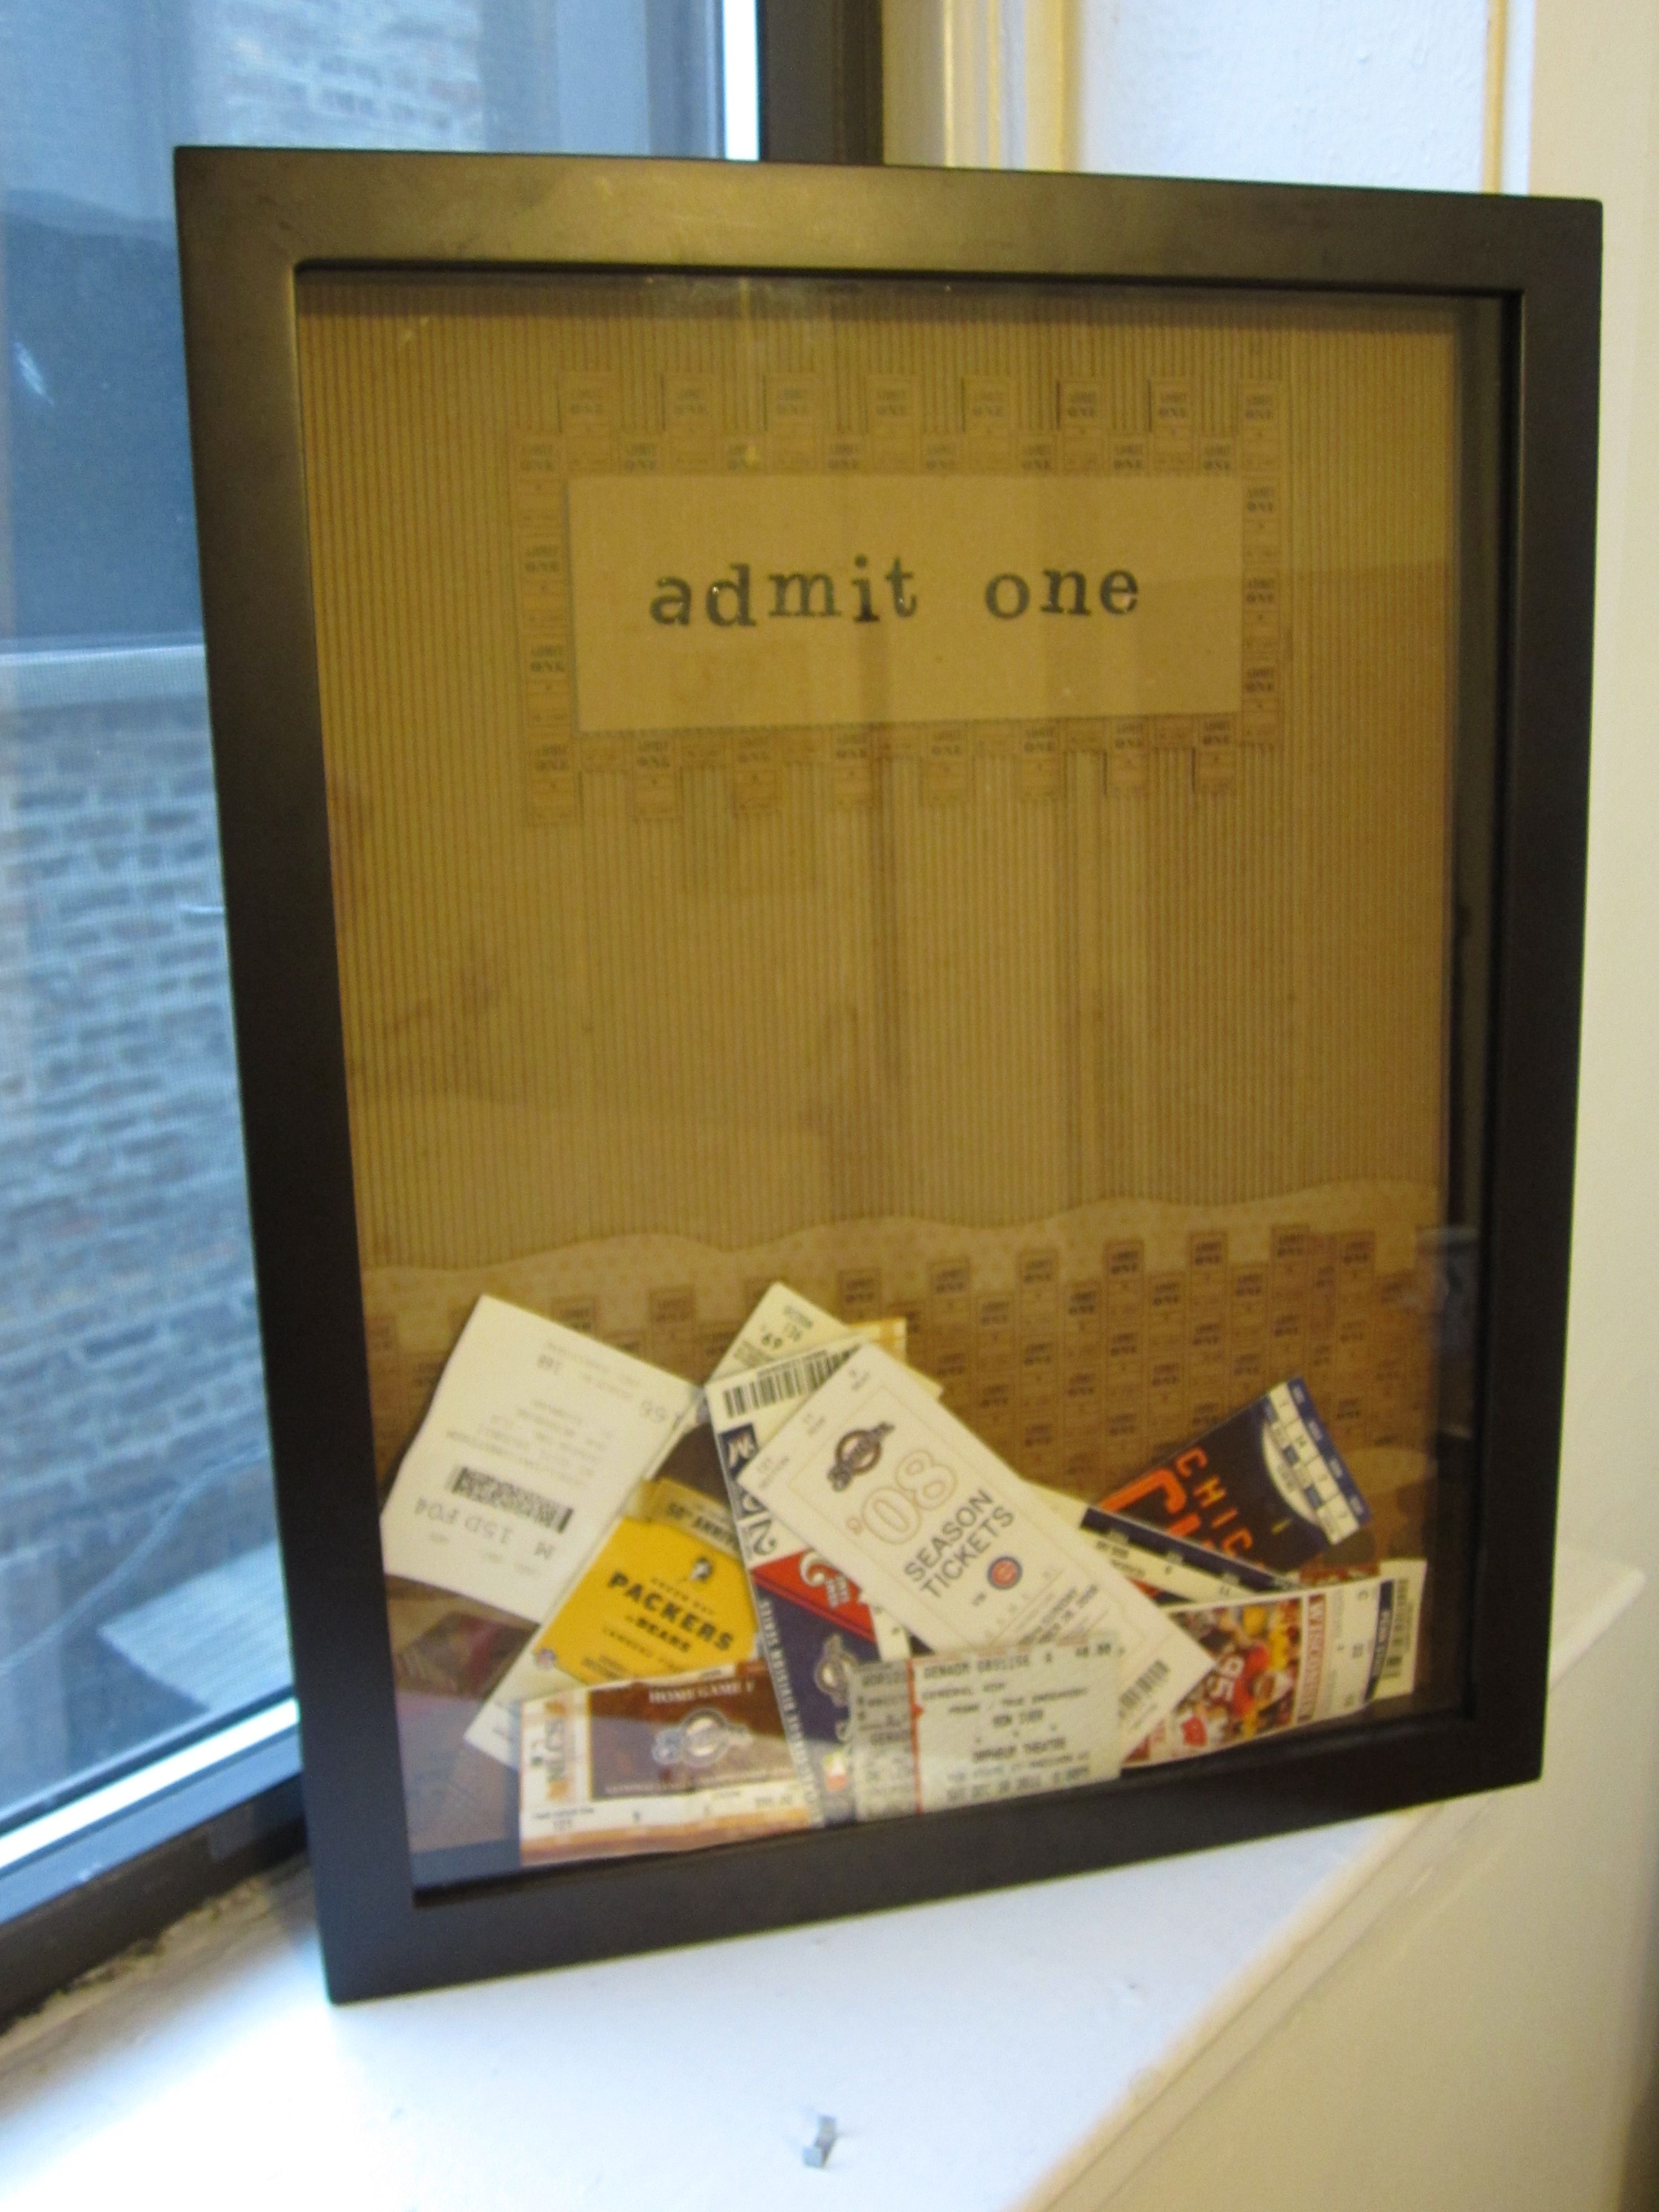 Make this for all your concert, sports & movie tickets... ratheur than throw away, this is a great way to display! slit at the top to drop in more tickets as the years go on! Fab idea! :D